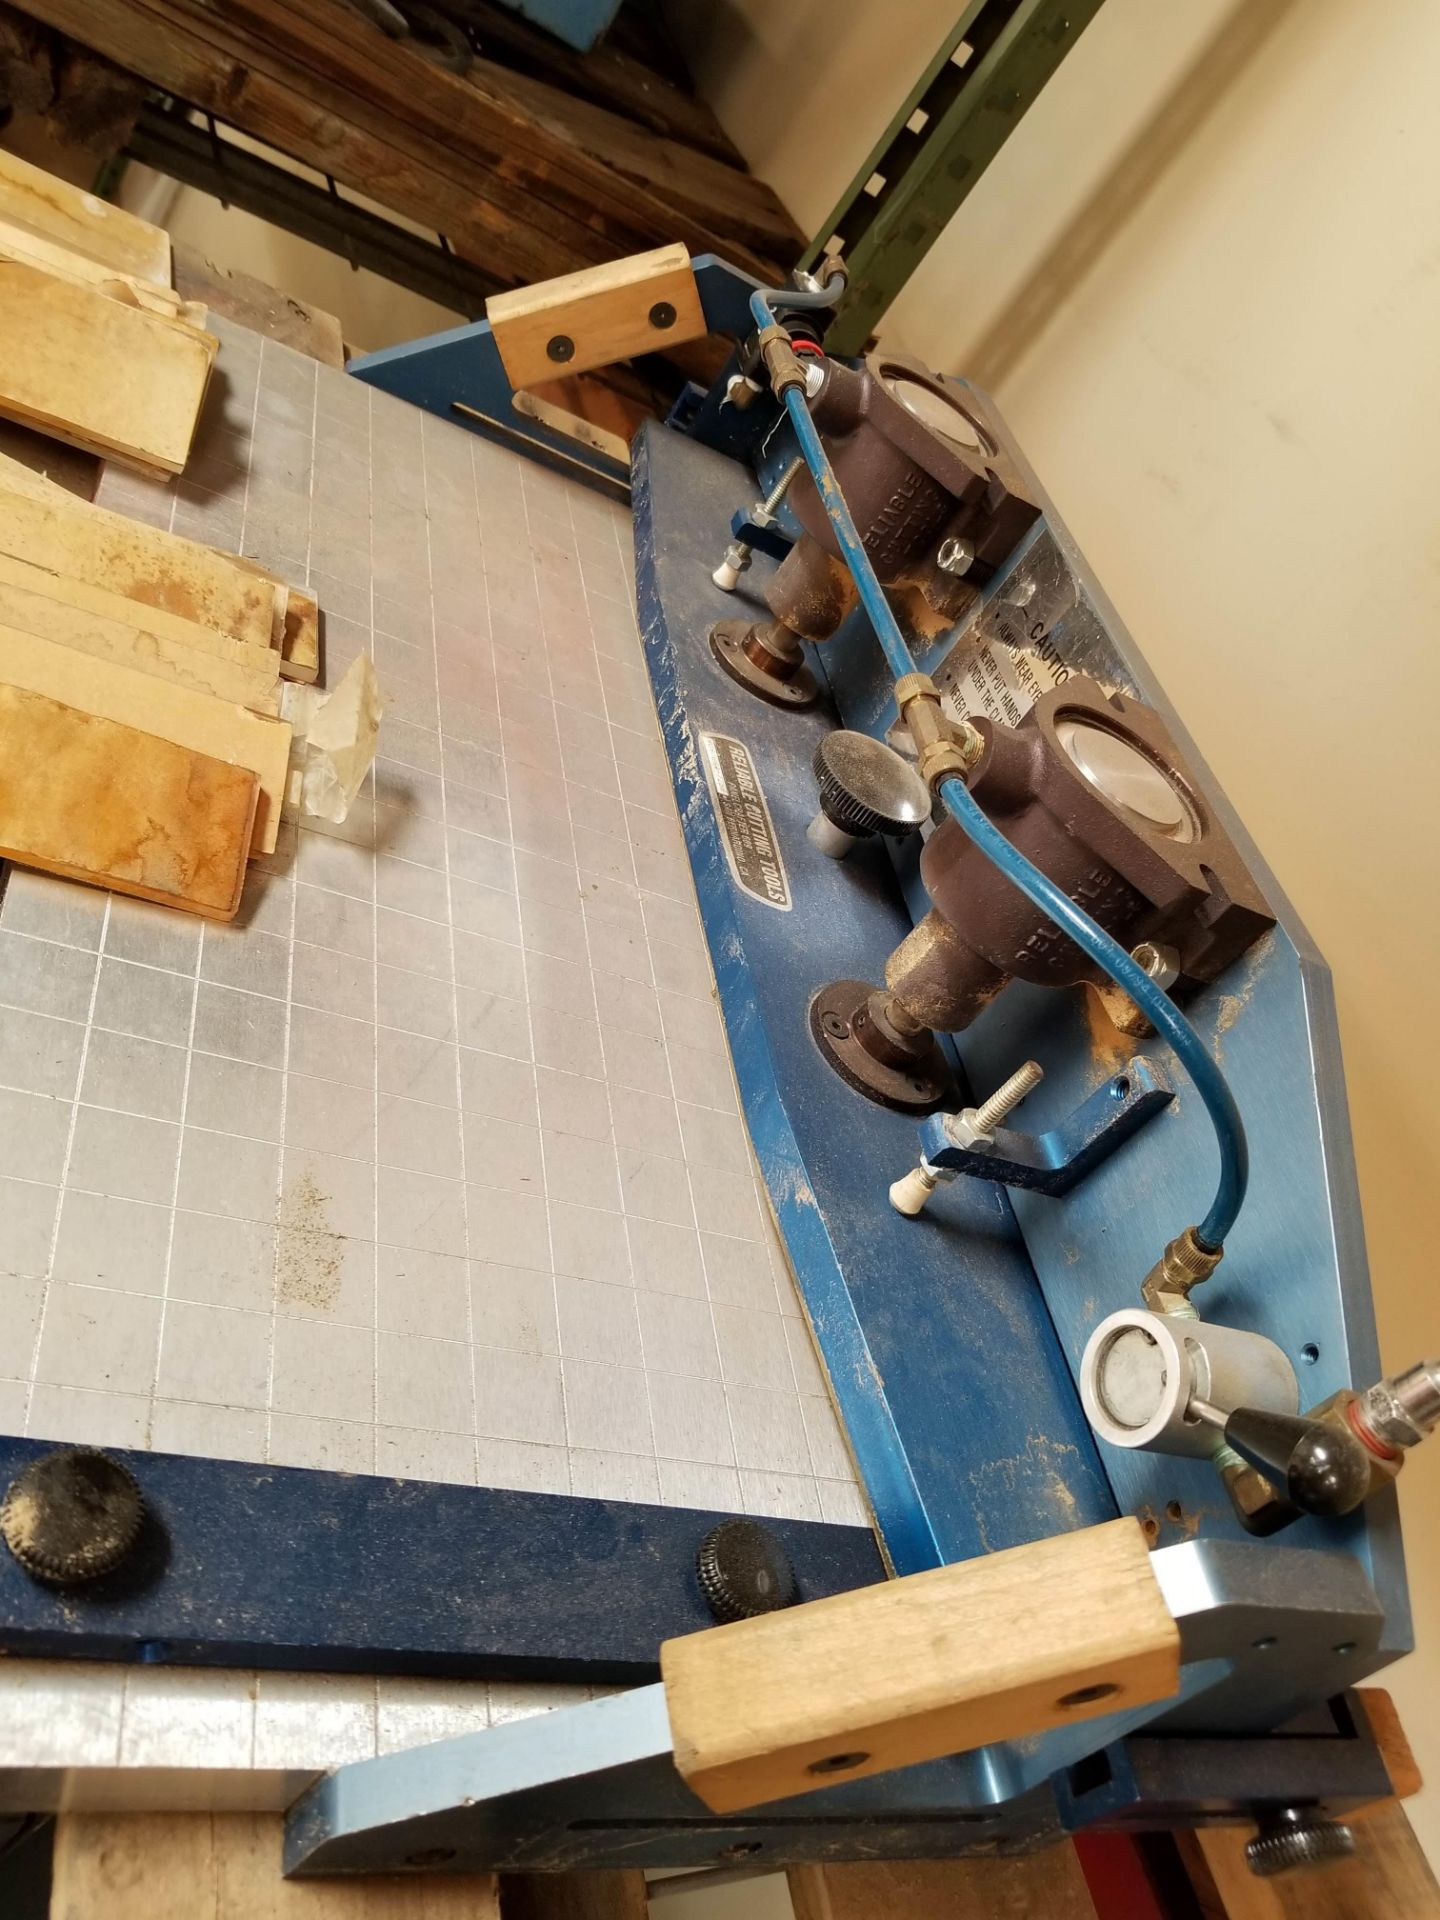 Lot 54 - Reliable Cutting Tools Panelcrafter Model 609 with Templates